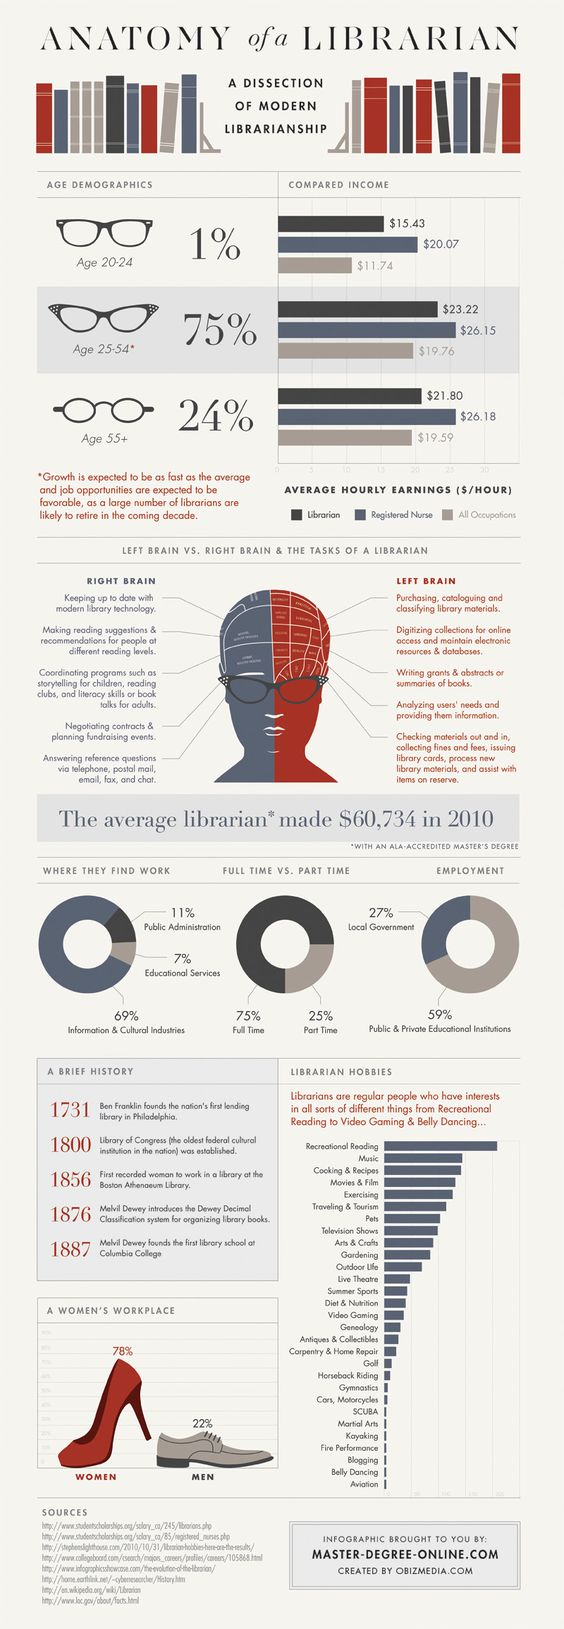 Anatomy of a Librarian infographic - because I'm feeling a little self-absorbed today